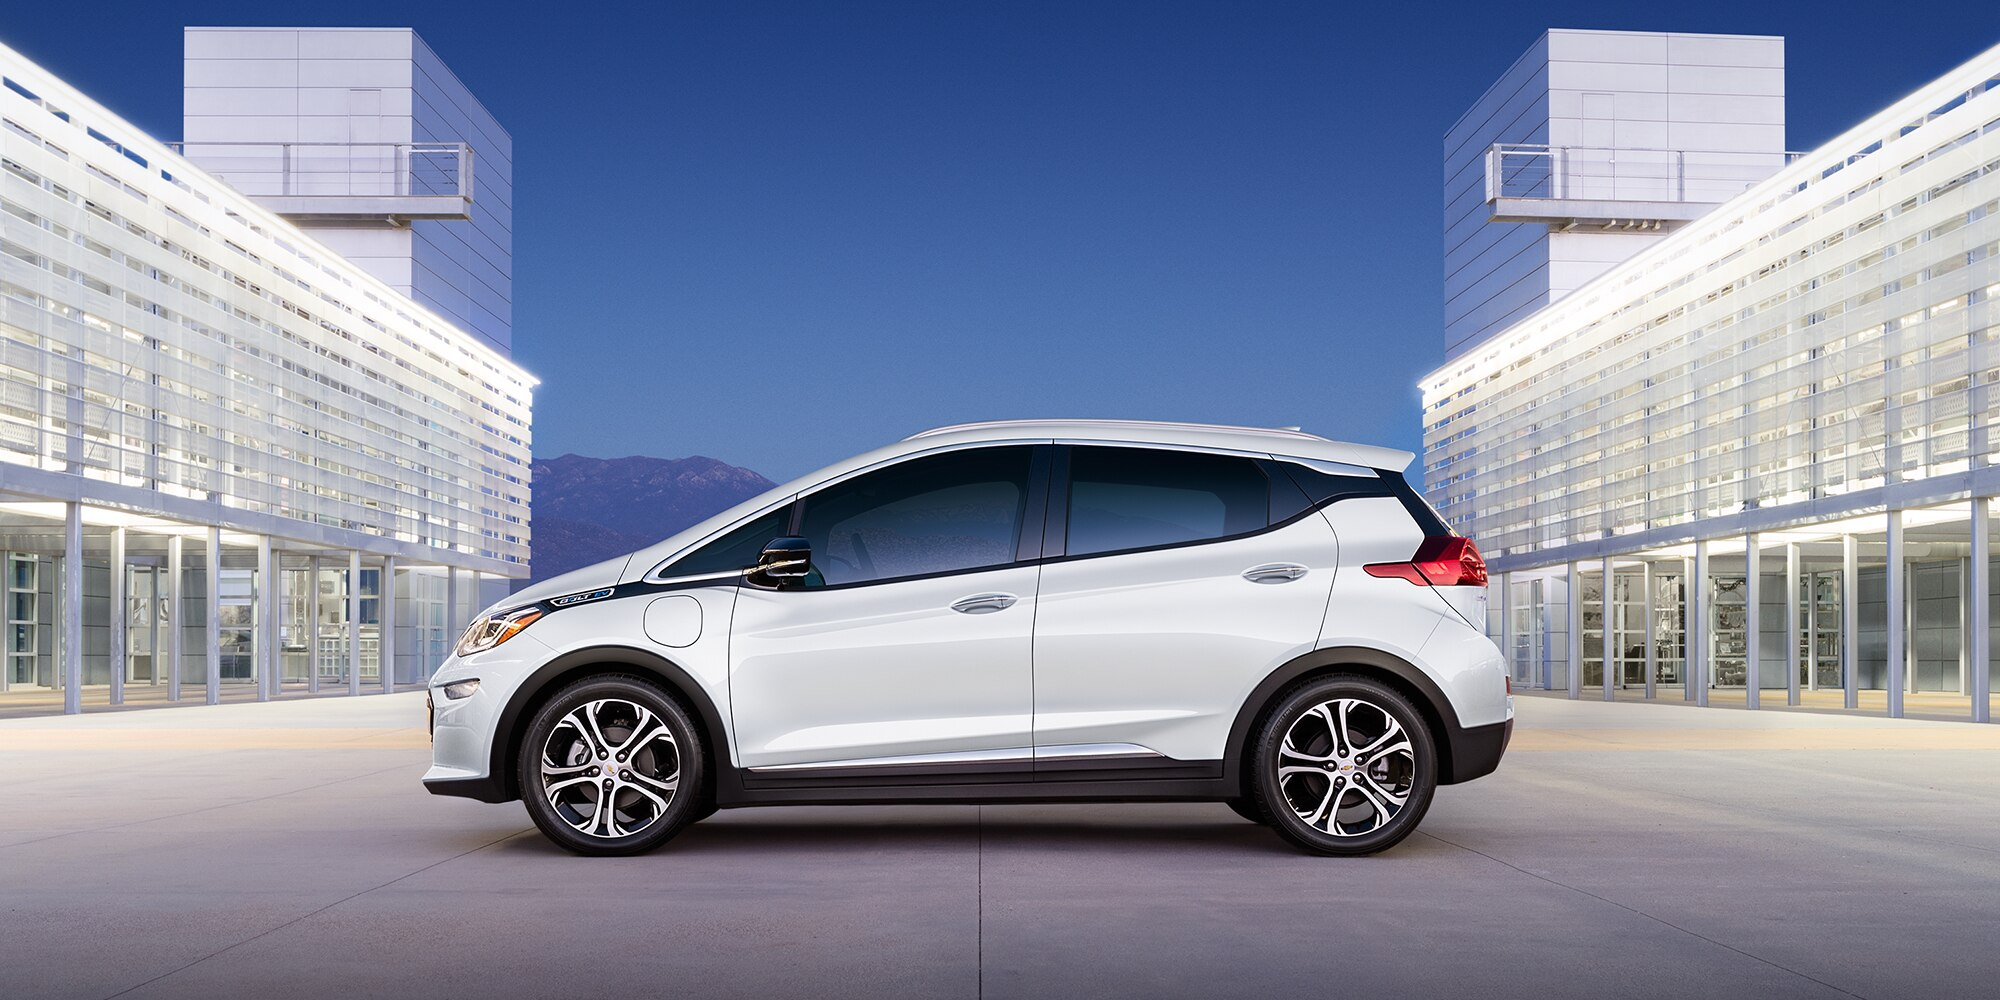 2019 Chevrolet Bolt EV for Sale near San Clemente, CA